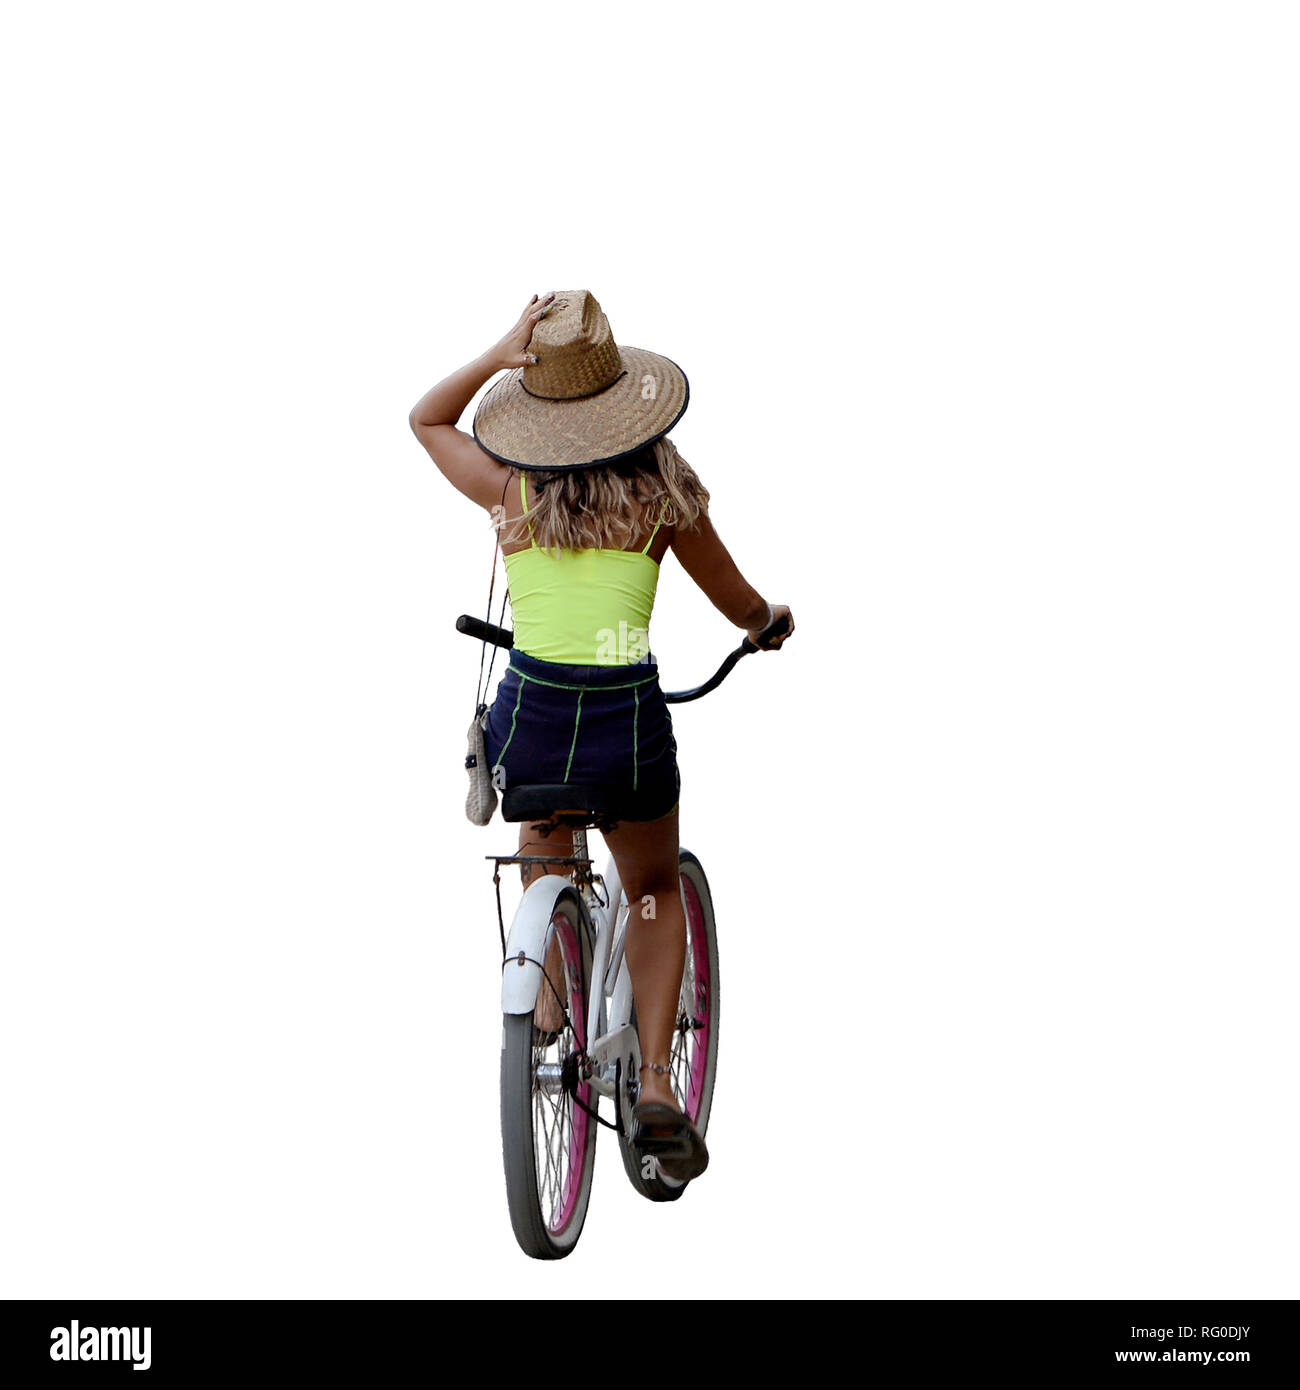 Hold onto your hat Pura Vida style .Girl in summer clothing, cycles away with one hand holding hat and steering with the other in Costa Rica. - Stock Image